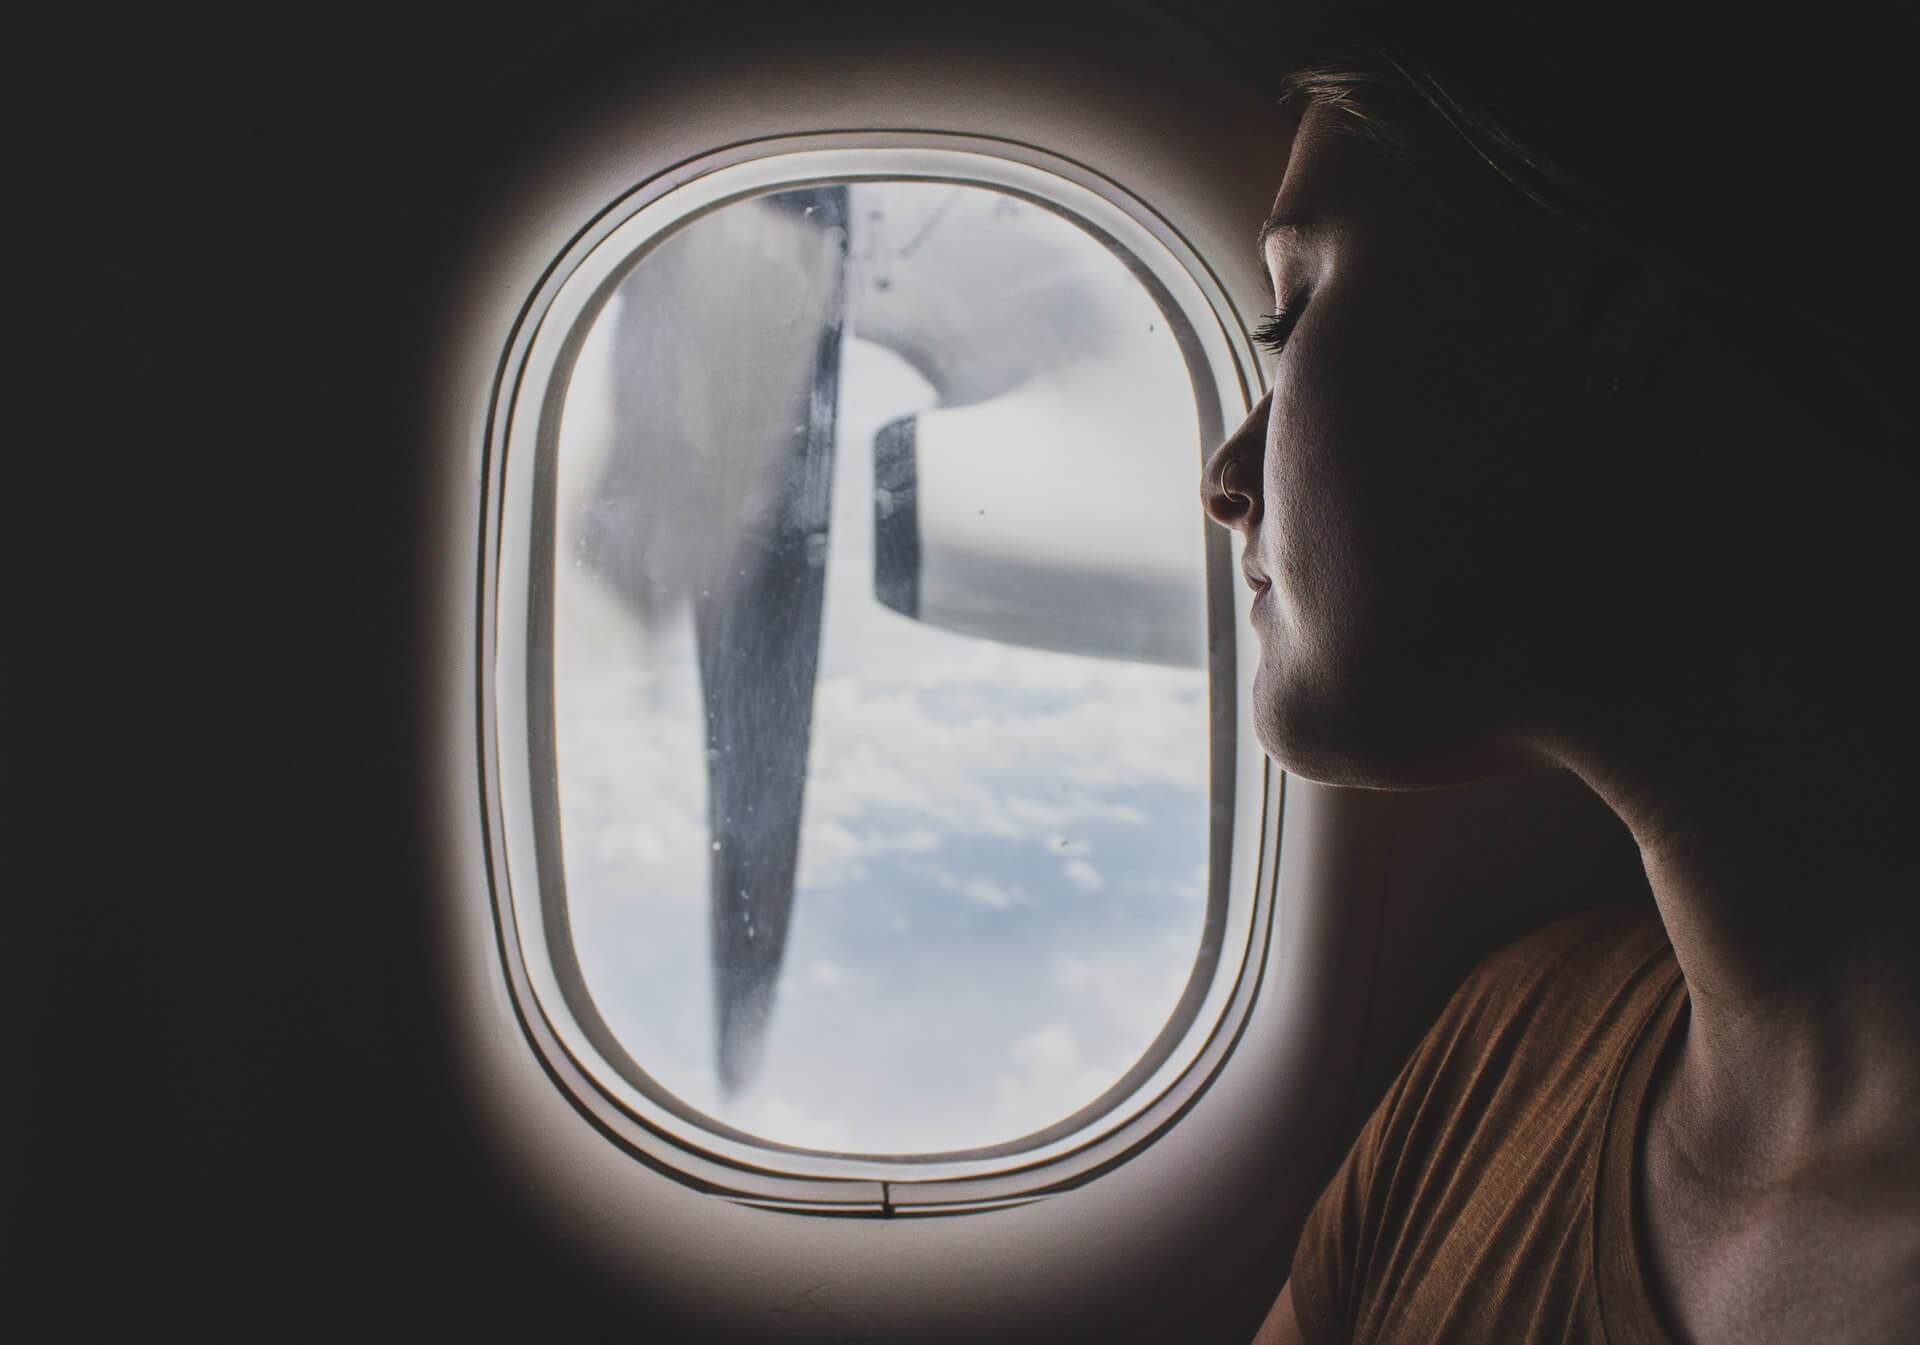 A woman looks out the window on an airplane.